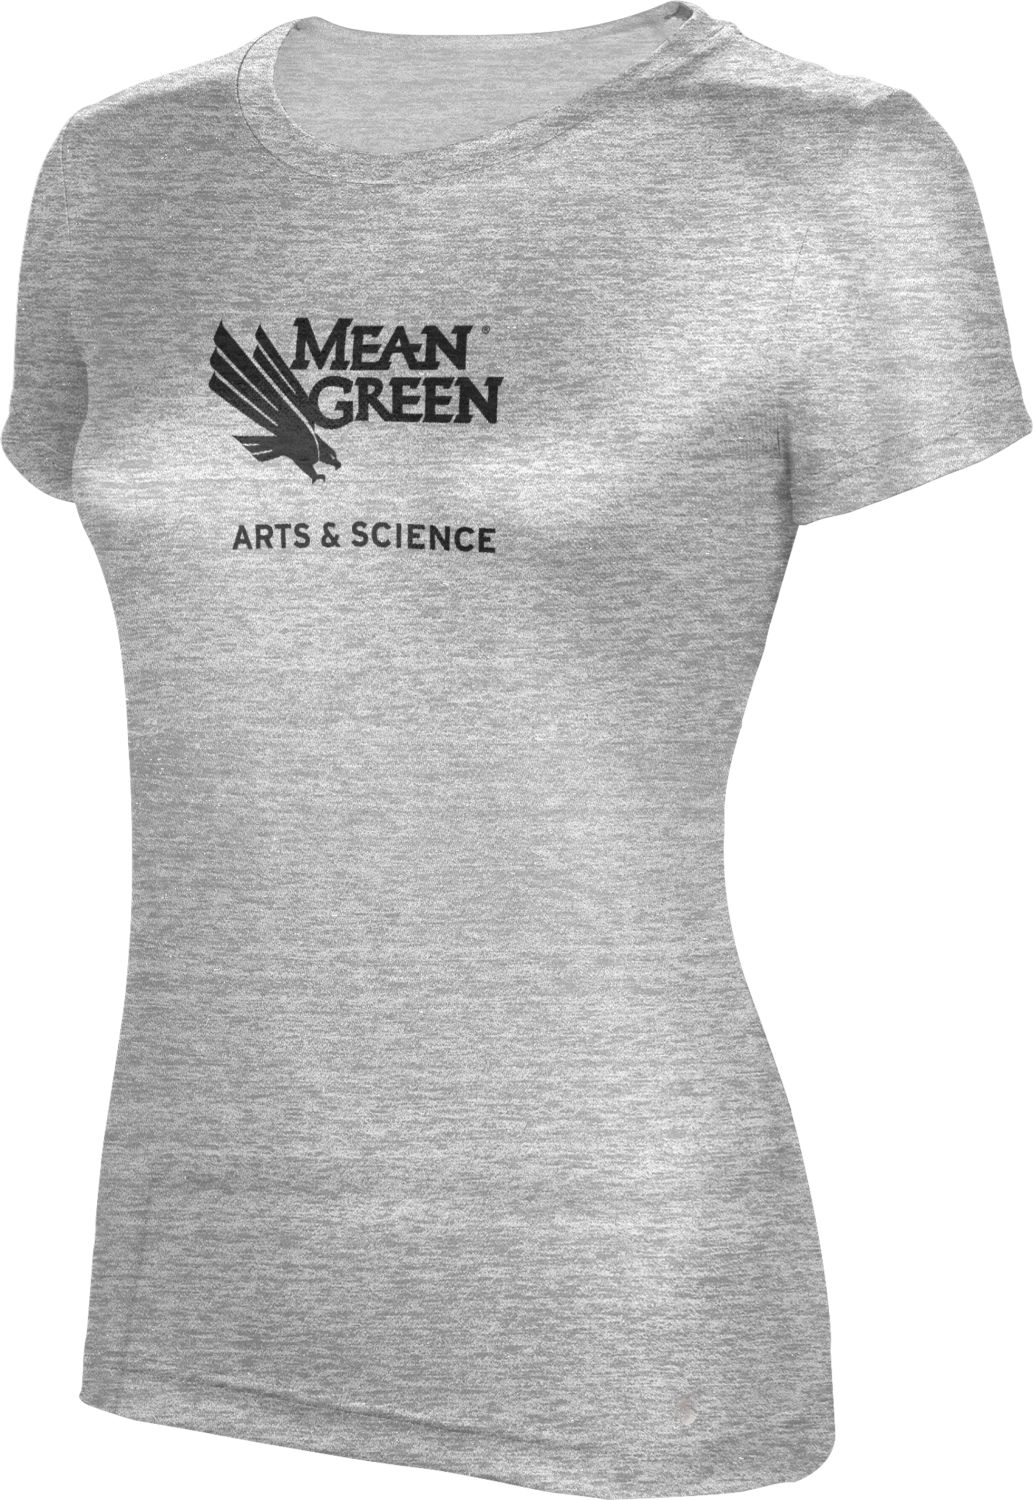 ProSphere Arts & Science Women's TriBlend Distressed Tee